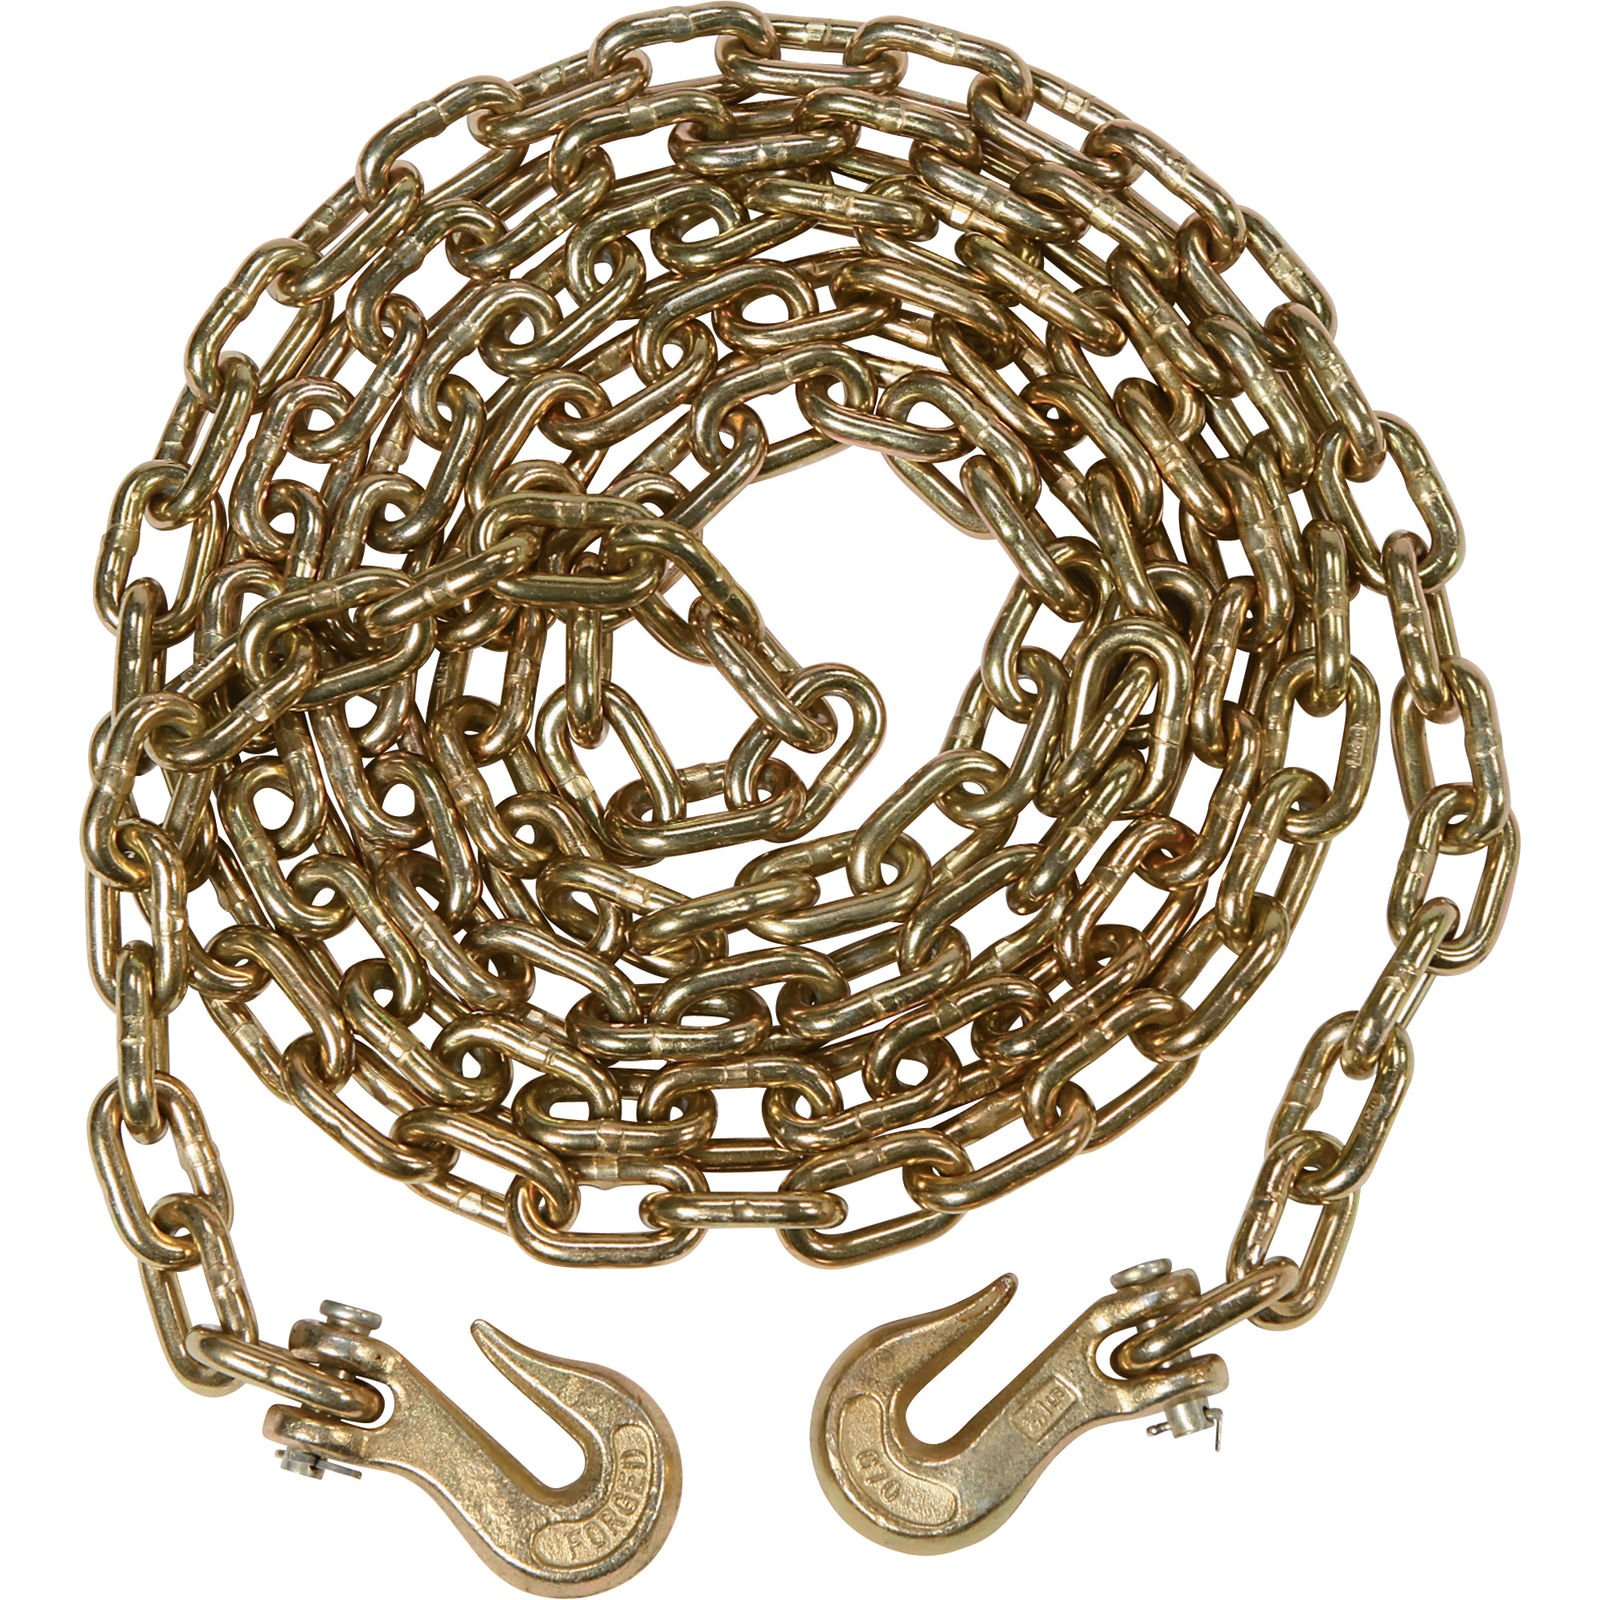 9TRADING 4 pack 5/16'' x 20' G70 Tow Chain Binder Tie Down Flatbed Truck or Trailer Chain, Free Tax, Delivered within 10 days